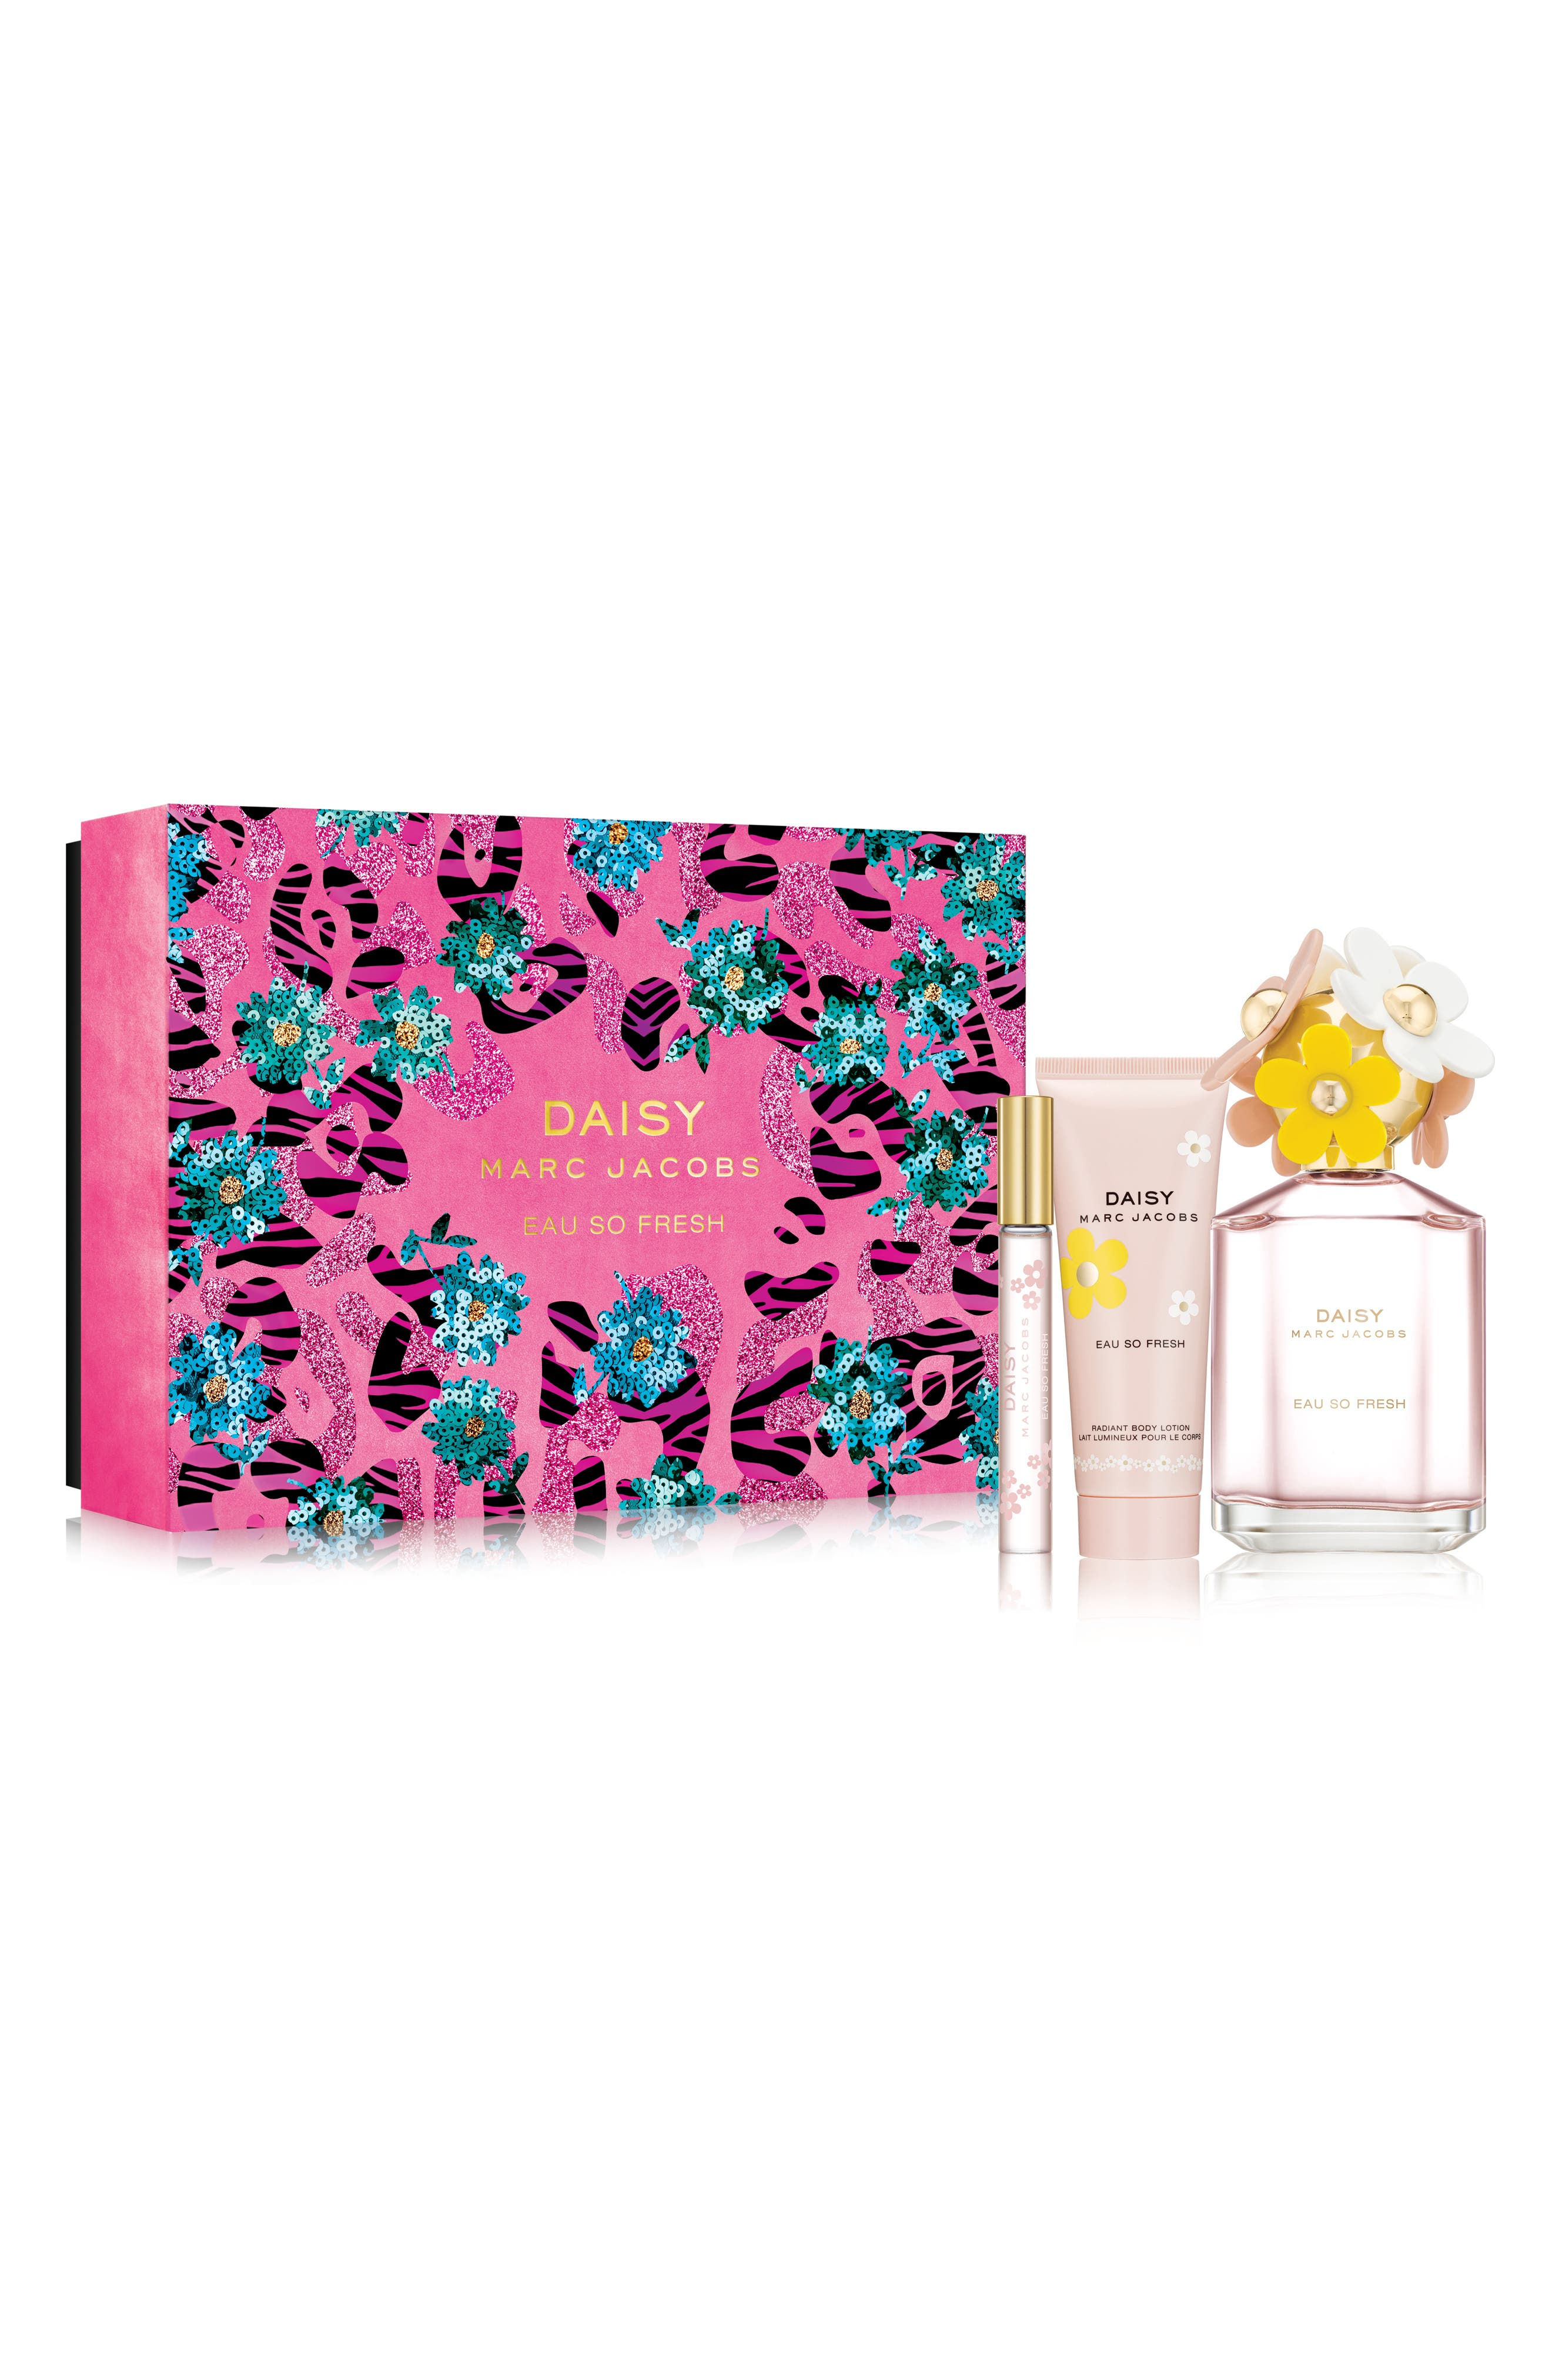 MARC JACOBS Daisy Eau So Fresh Set ($158 Value)